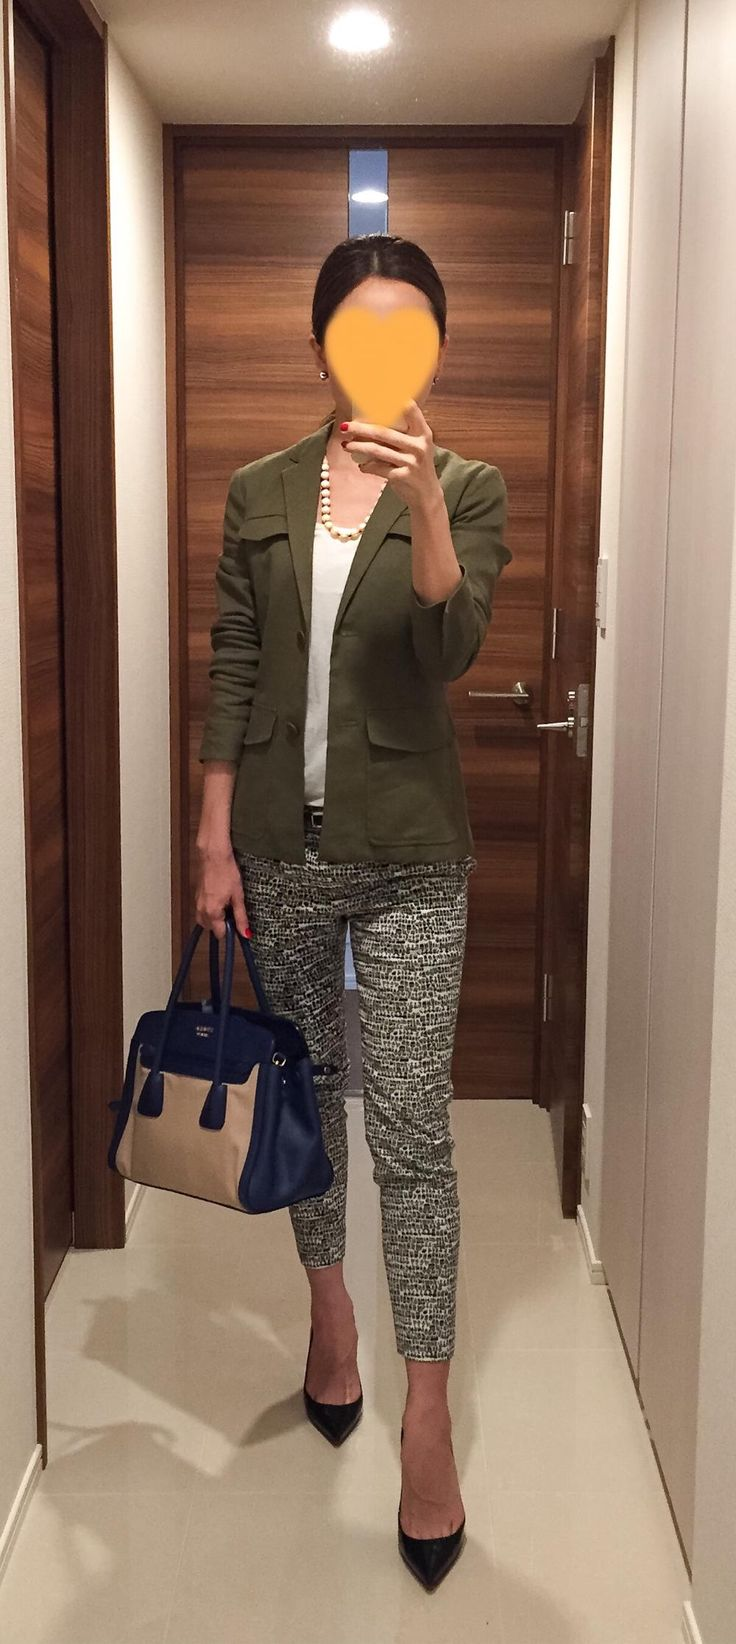 Khaki jacket: Theory, White tee: SISLEY, Pants: Tomorrowland, Bag: PRADA, Pumps: Christian Louboutin